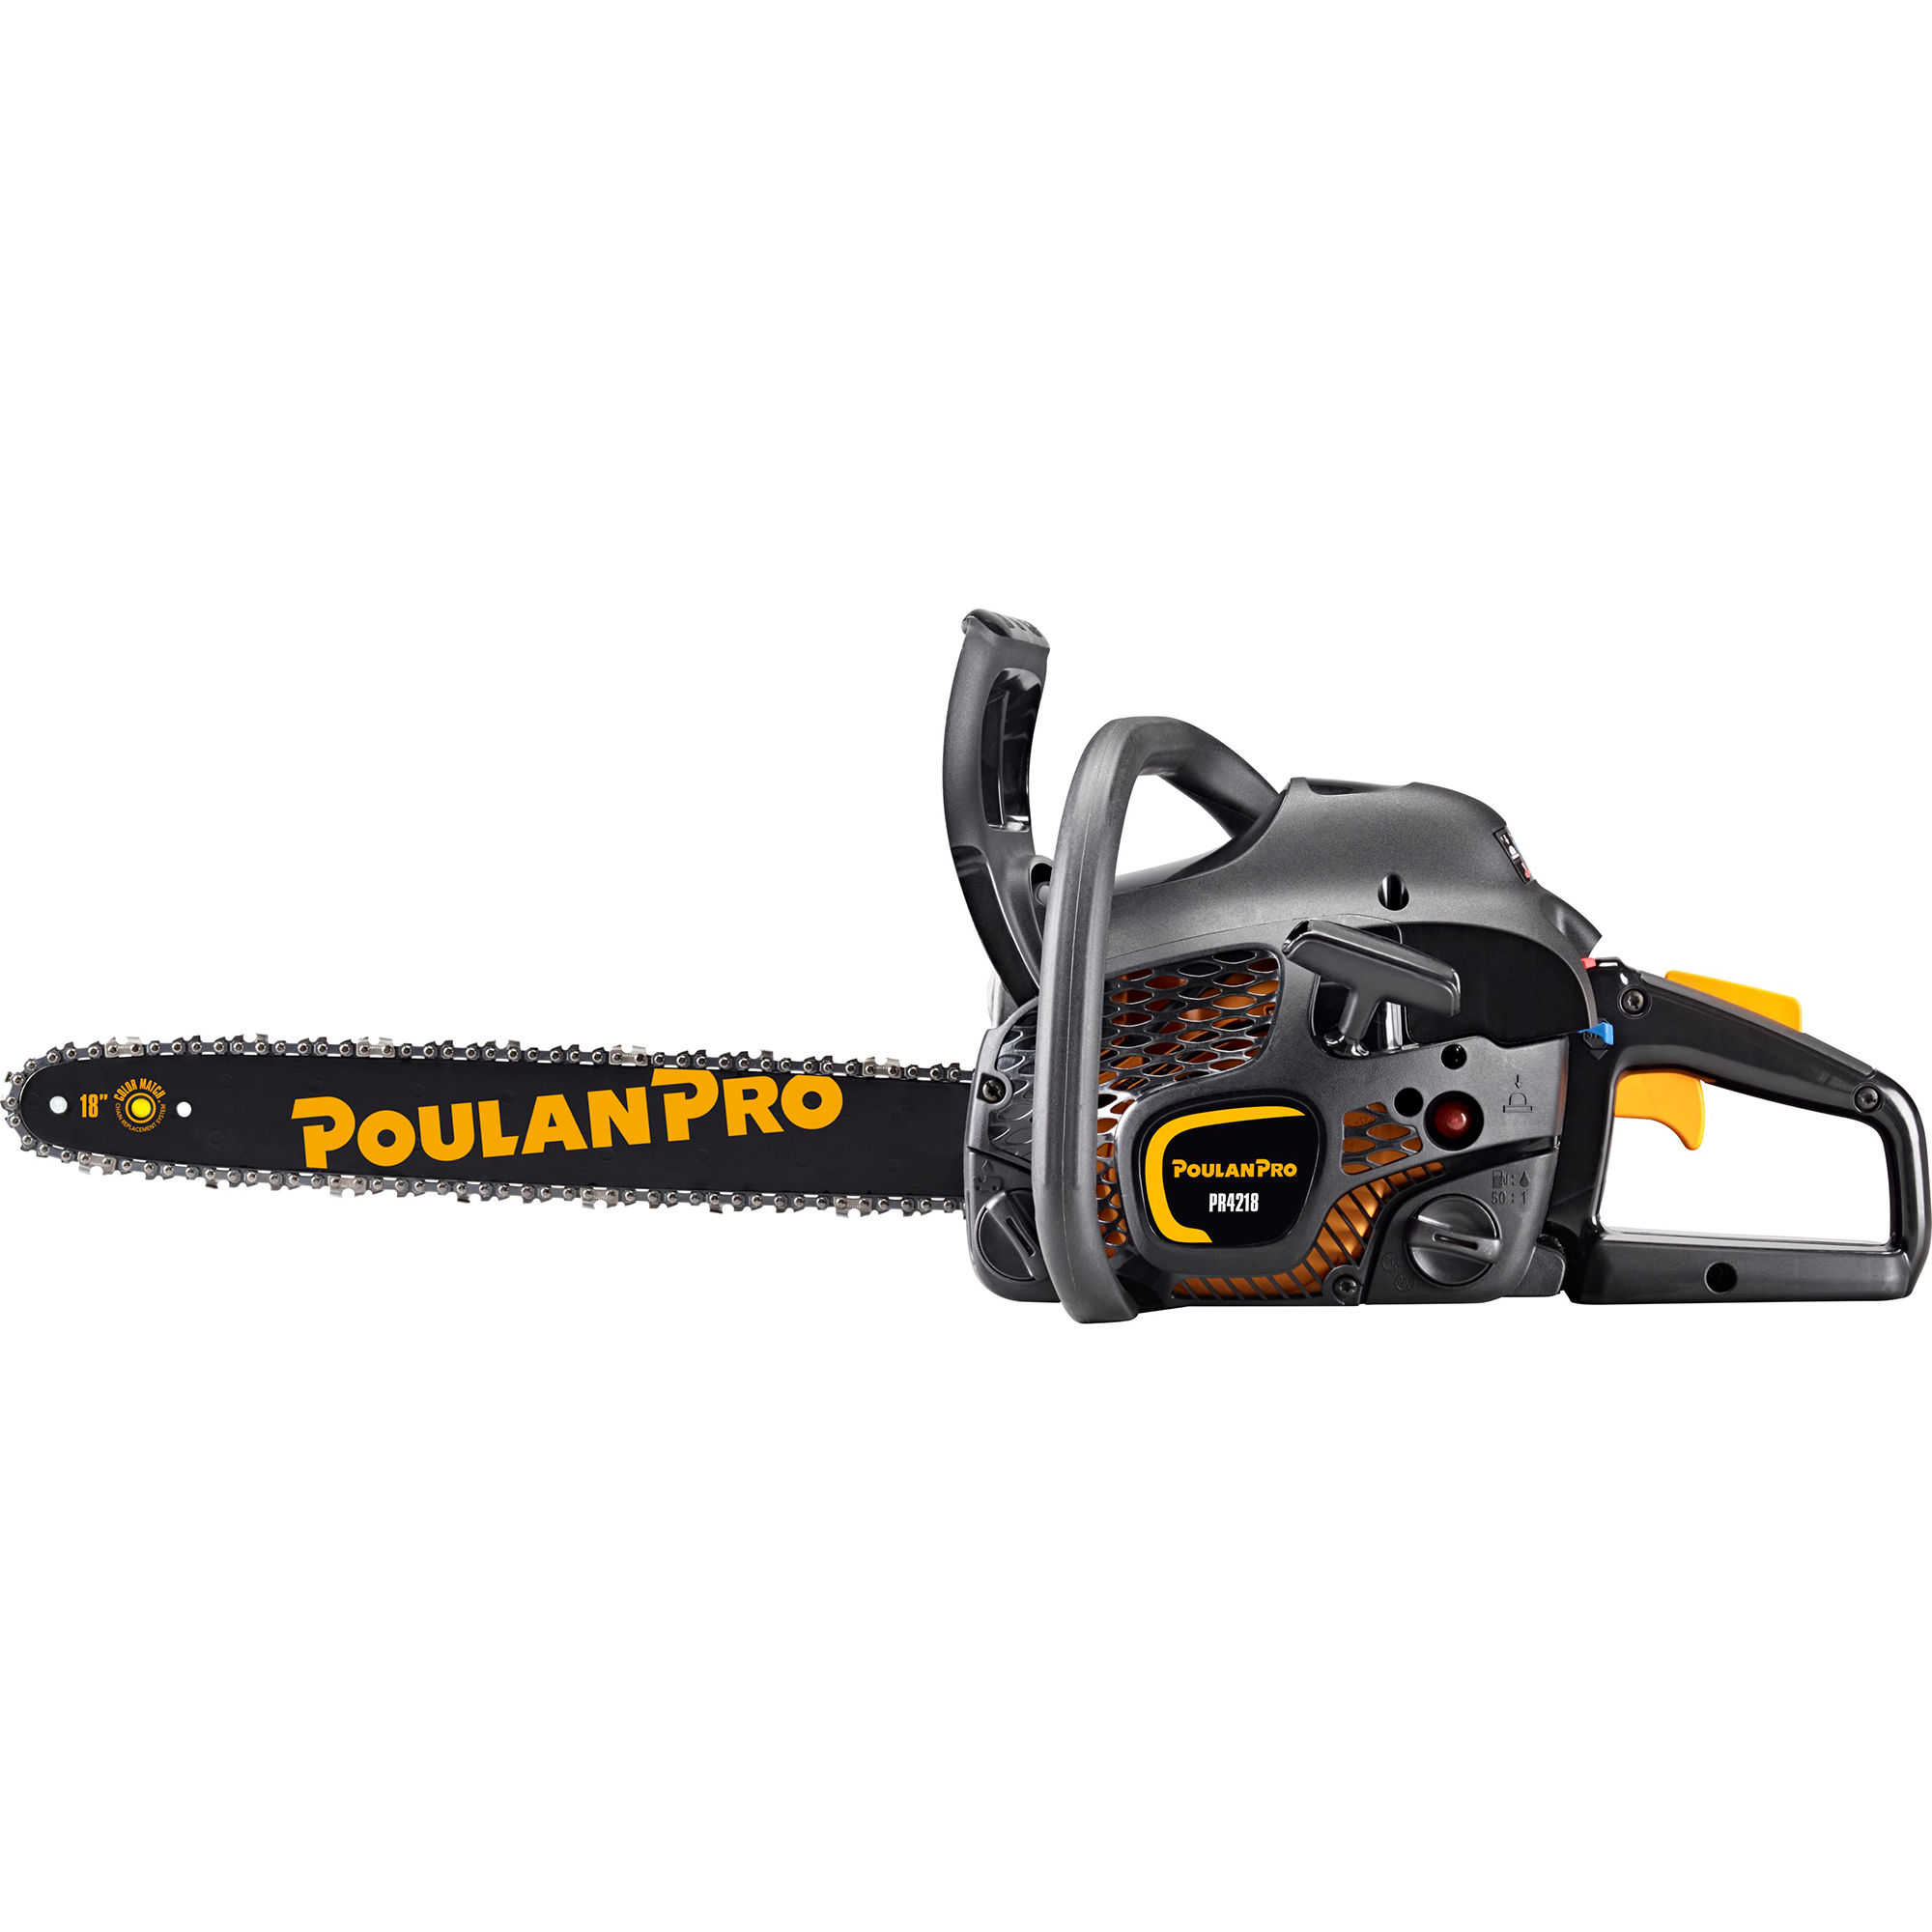 "Poulan Pro 18"" Bar 42CC 2 Cycle Gas Powered Chainsaw (Certified Refurbished) by Poulan Pro"